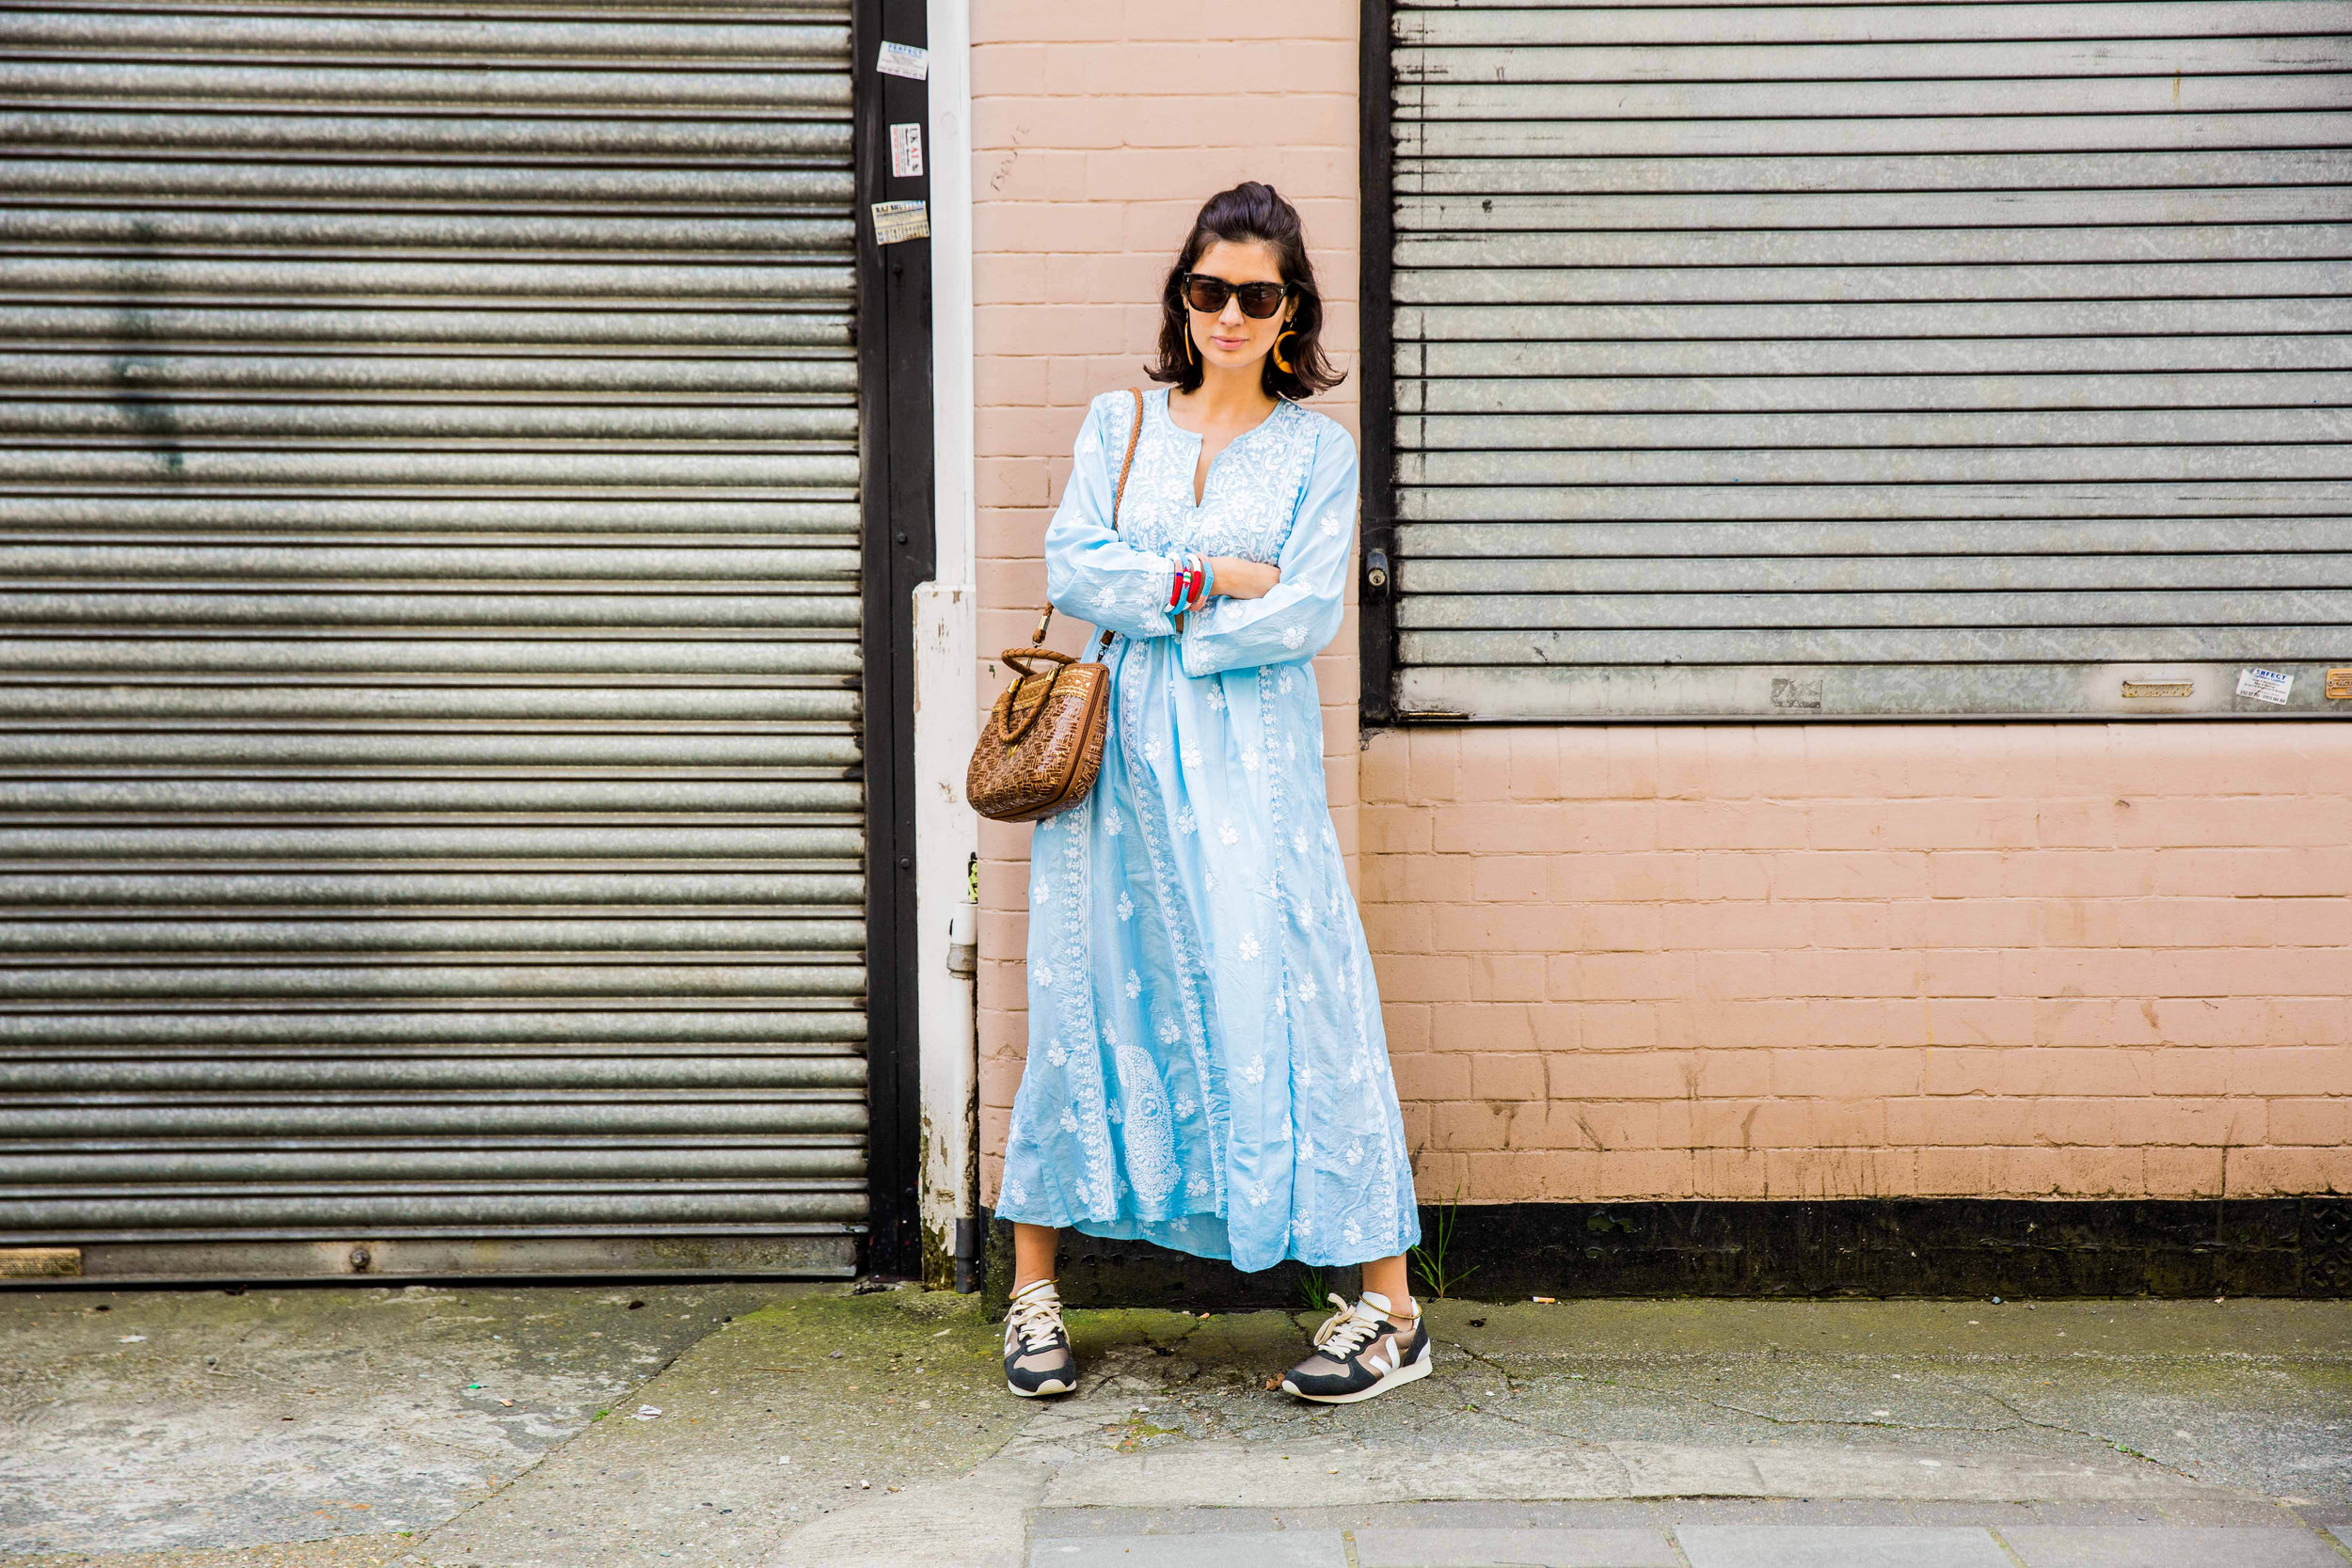 JasmineHemsley_FashionRevolution_Selects_NickHopper-1901.jpg